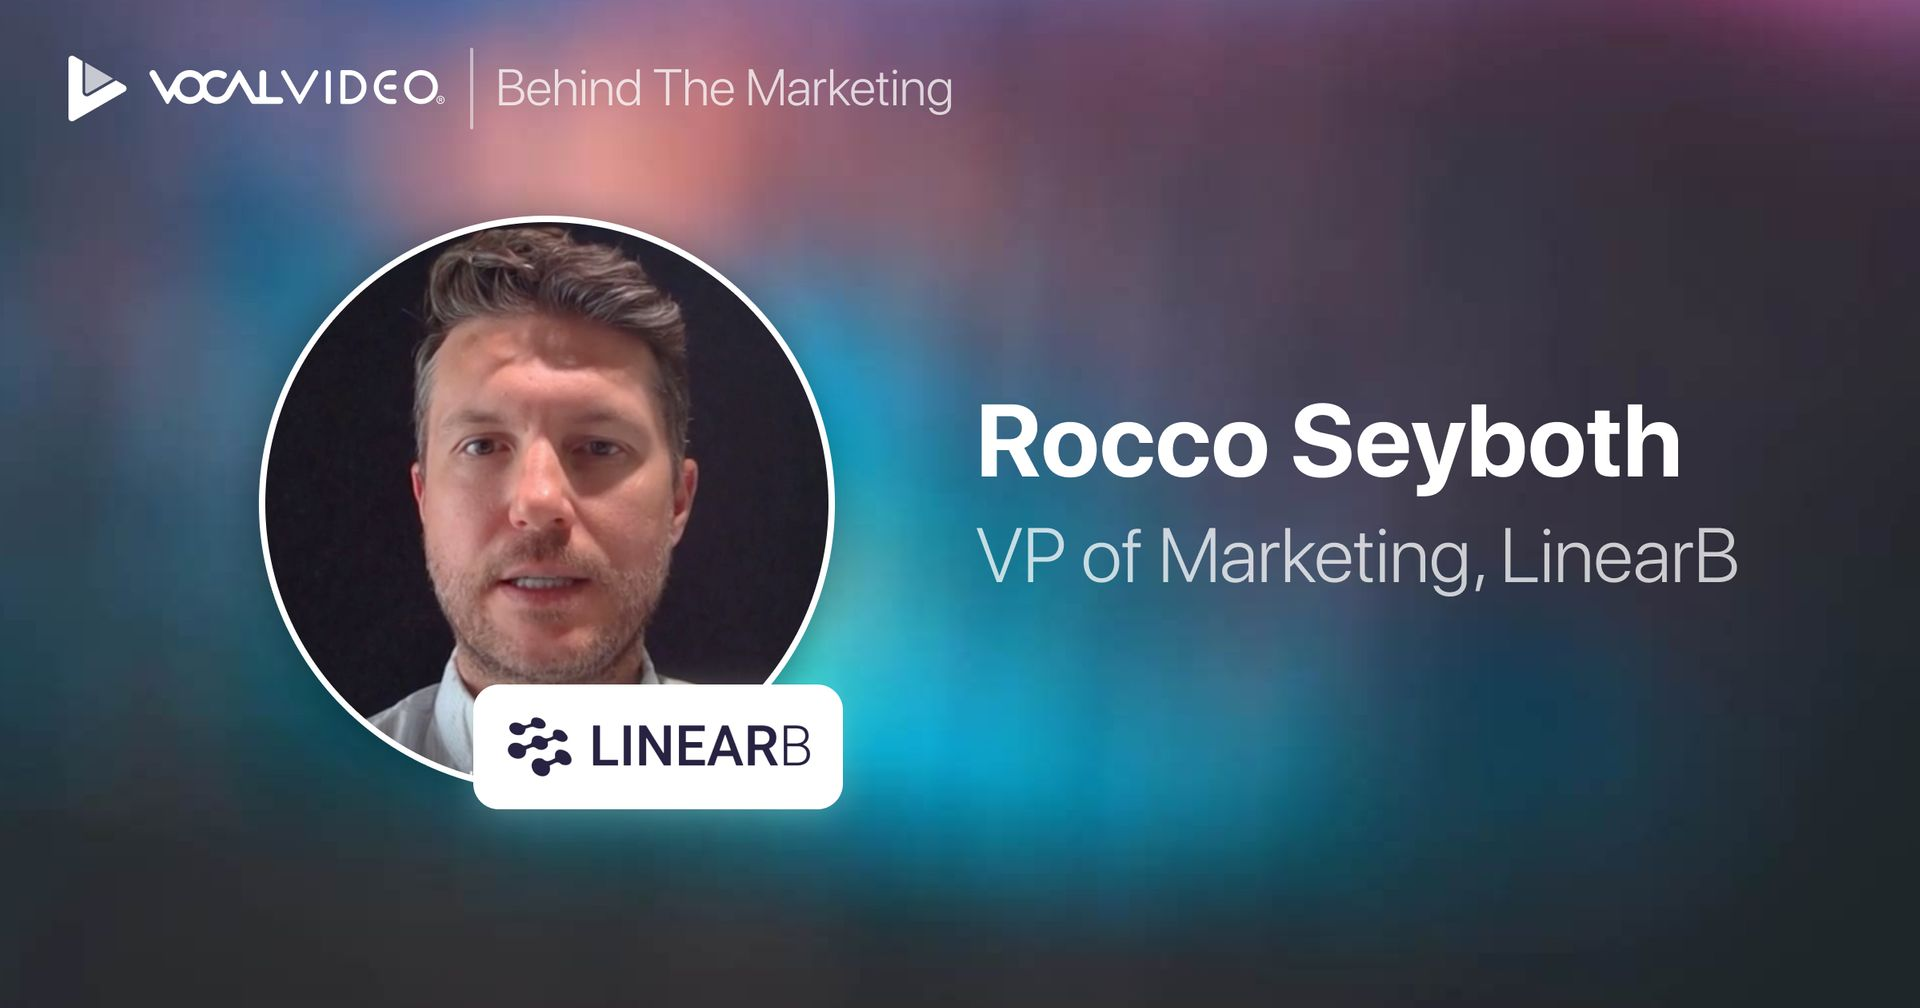 Behind the Marketing: Rocco Seyboth, VP Marketing at LinearB